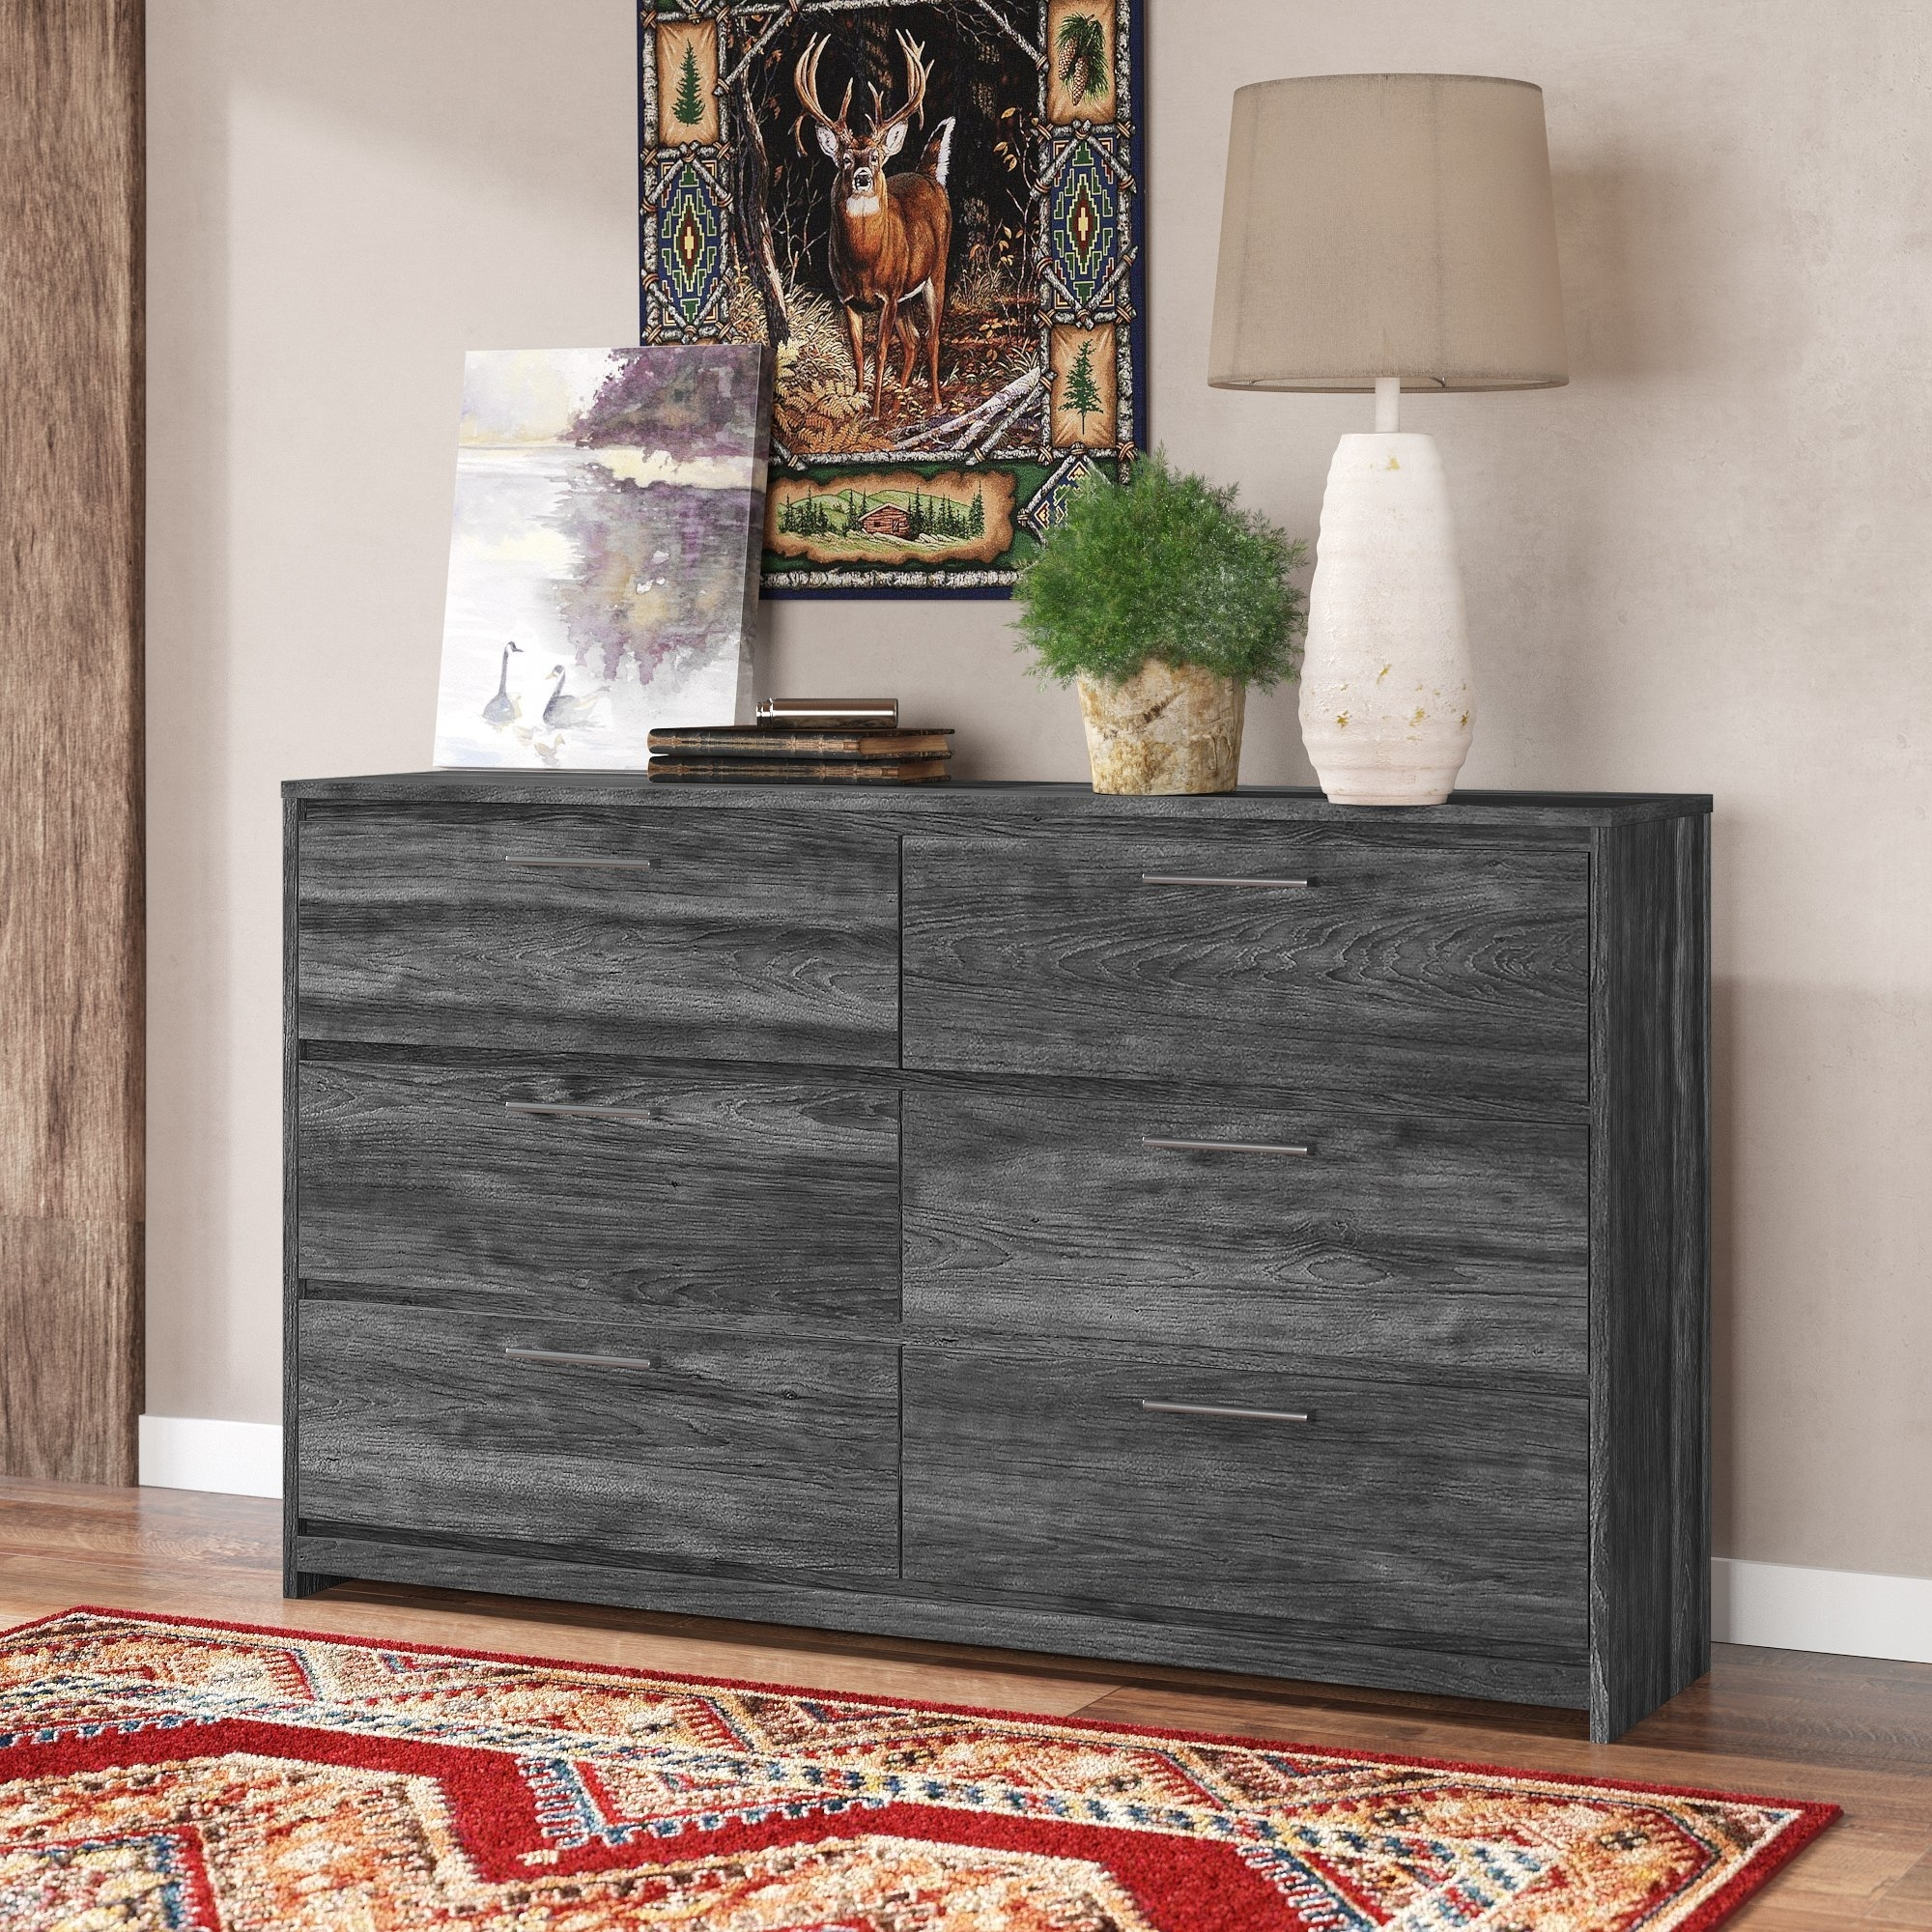 Foundry Select | Wayfair Regarding Most Up To Date Bale Rustic Grey Sideboards (#9 of 20)